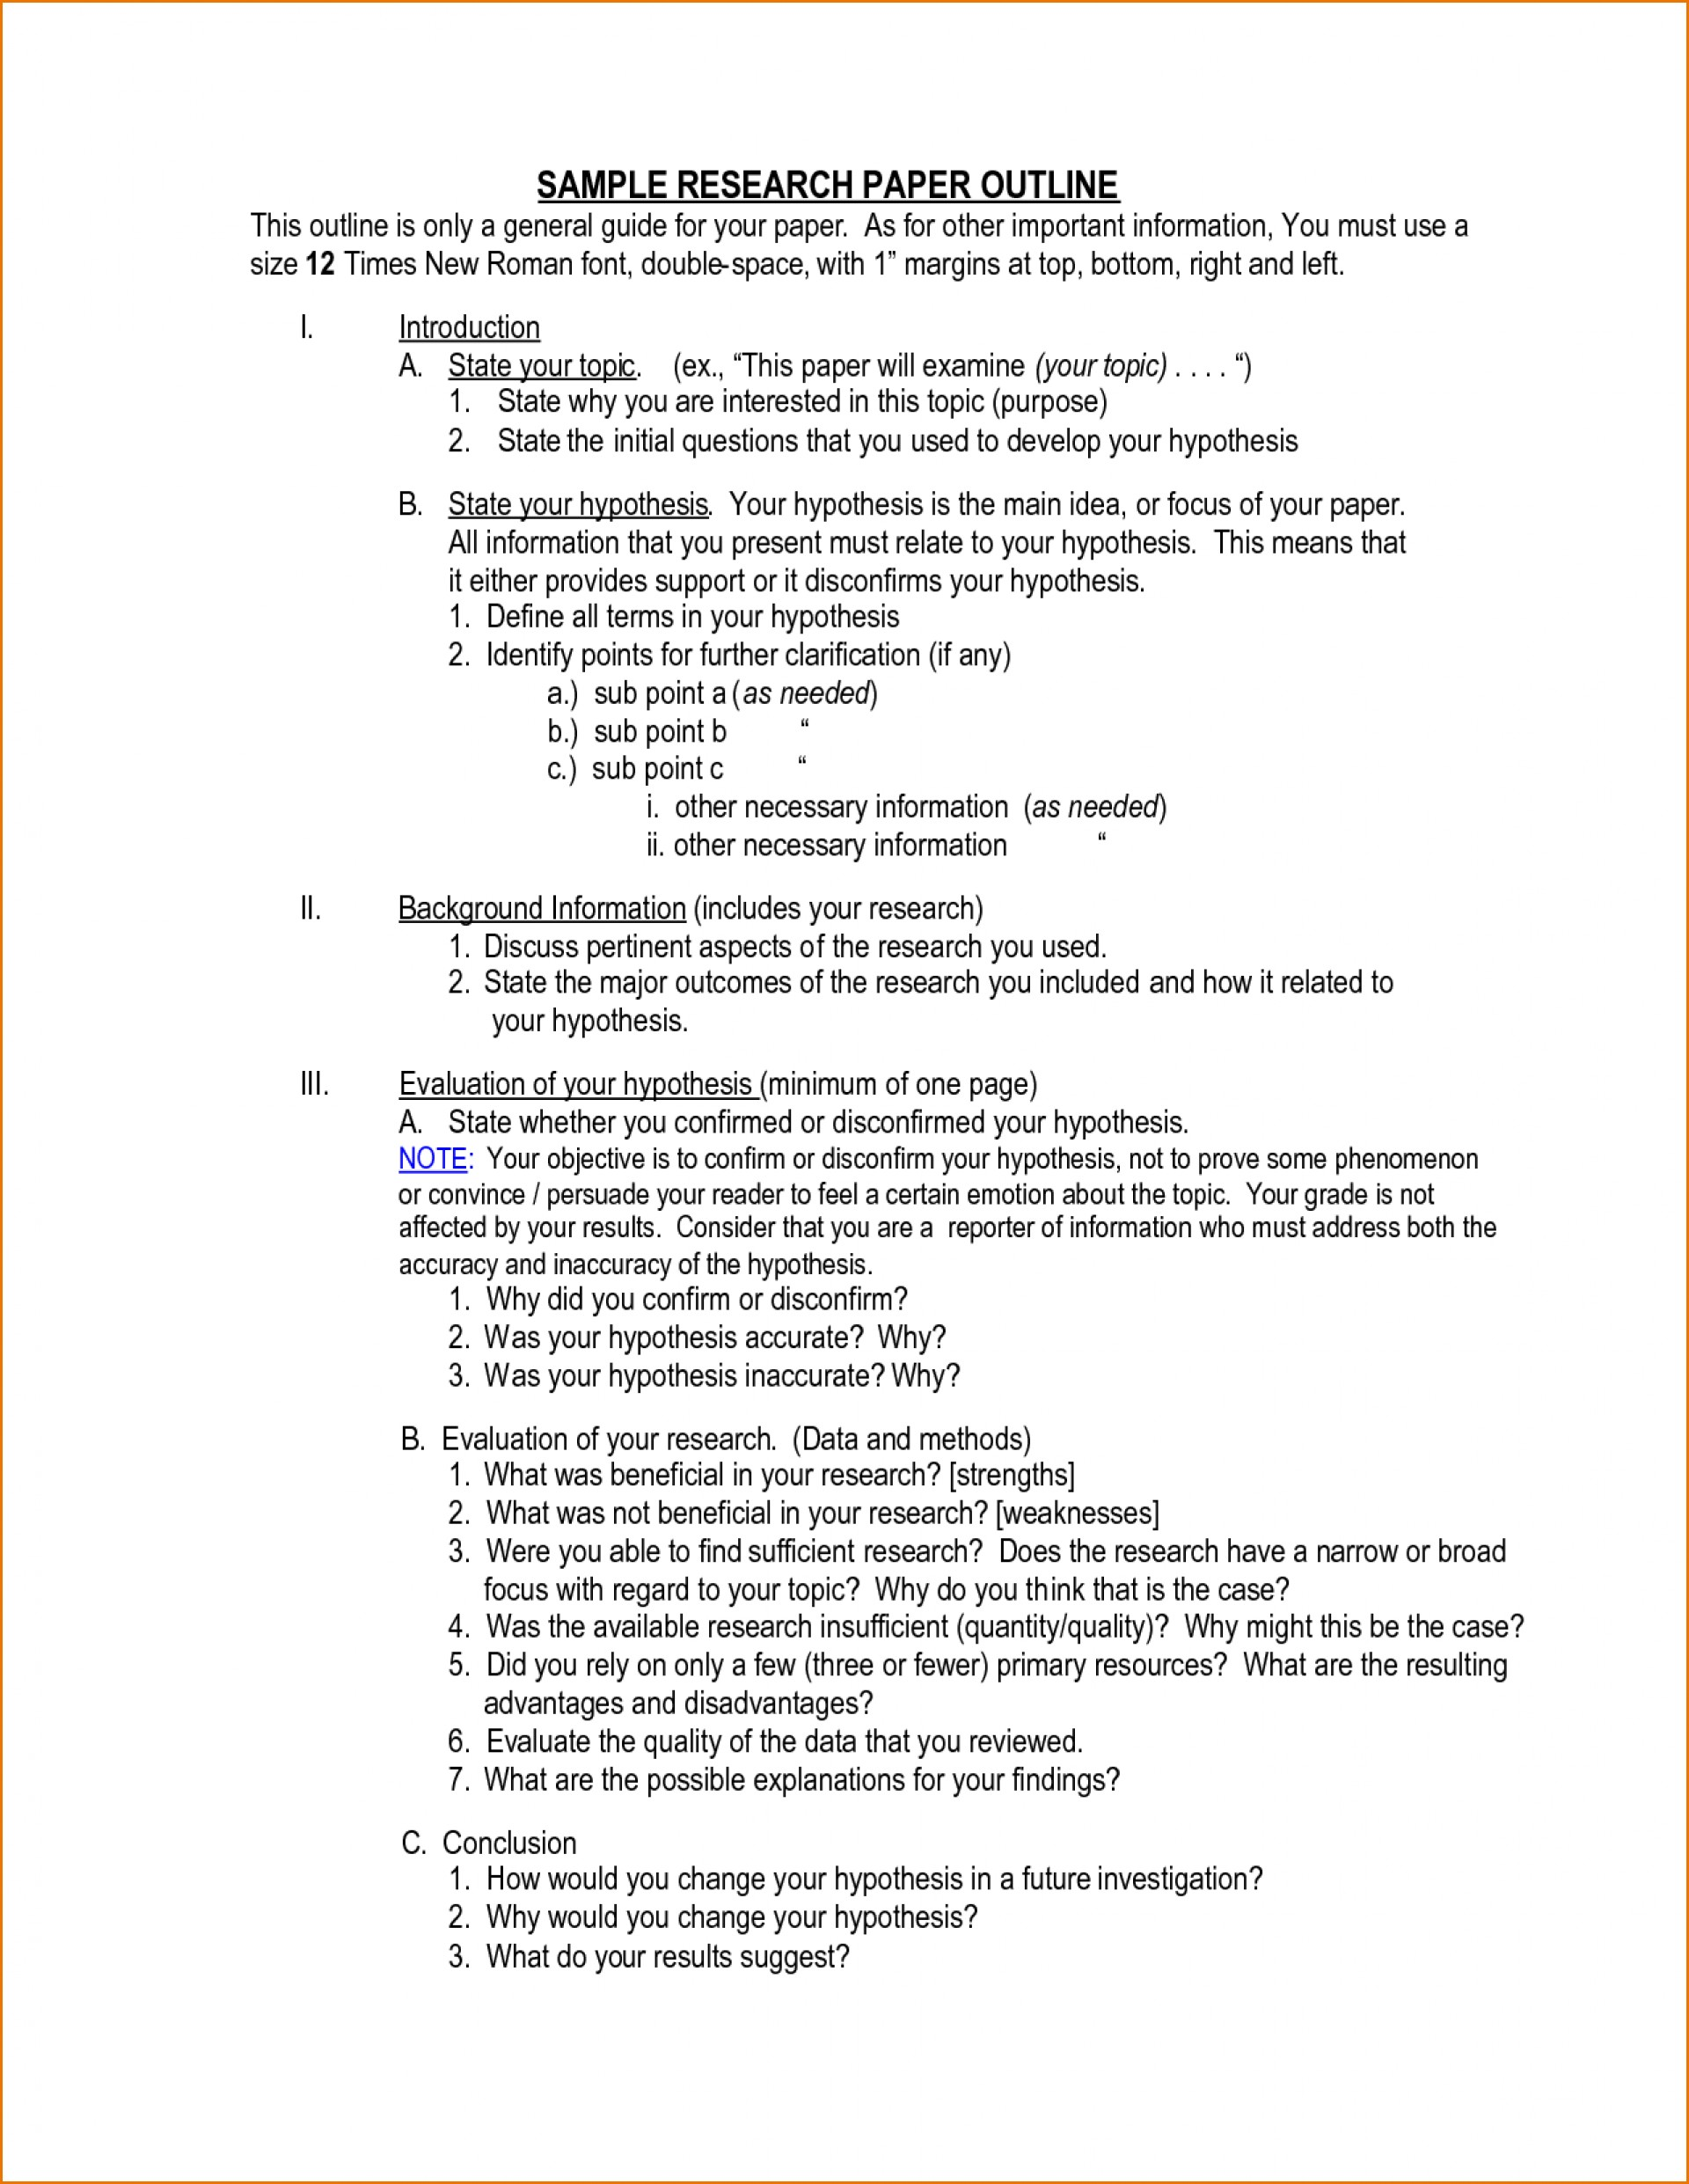 017 Hypothesis In Research Paper Outline Template For Fantastic Null And Alternative Testing Project 1920